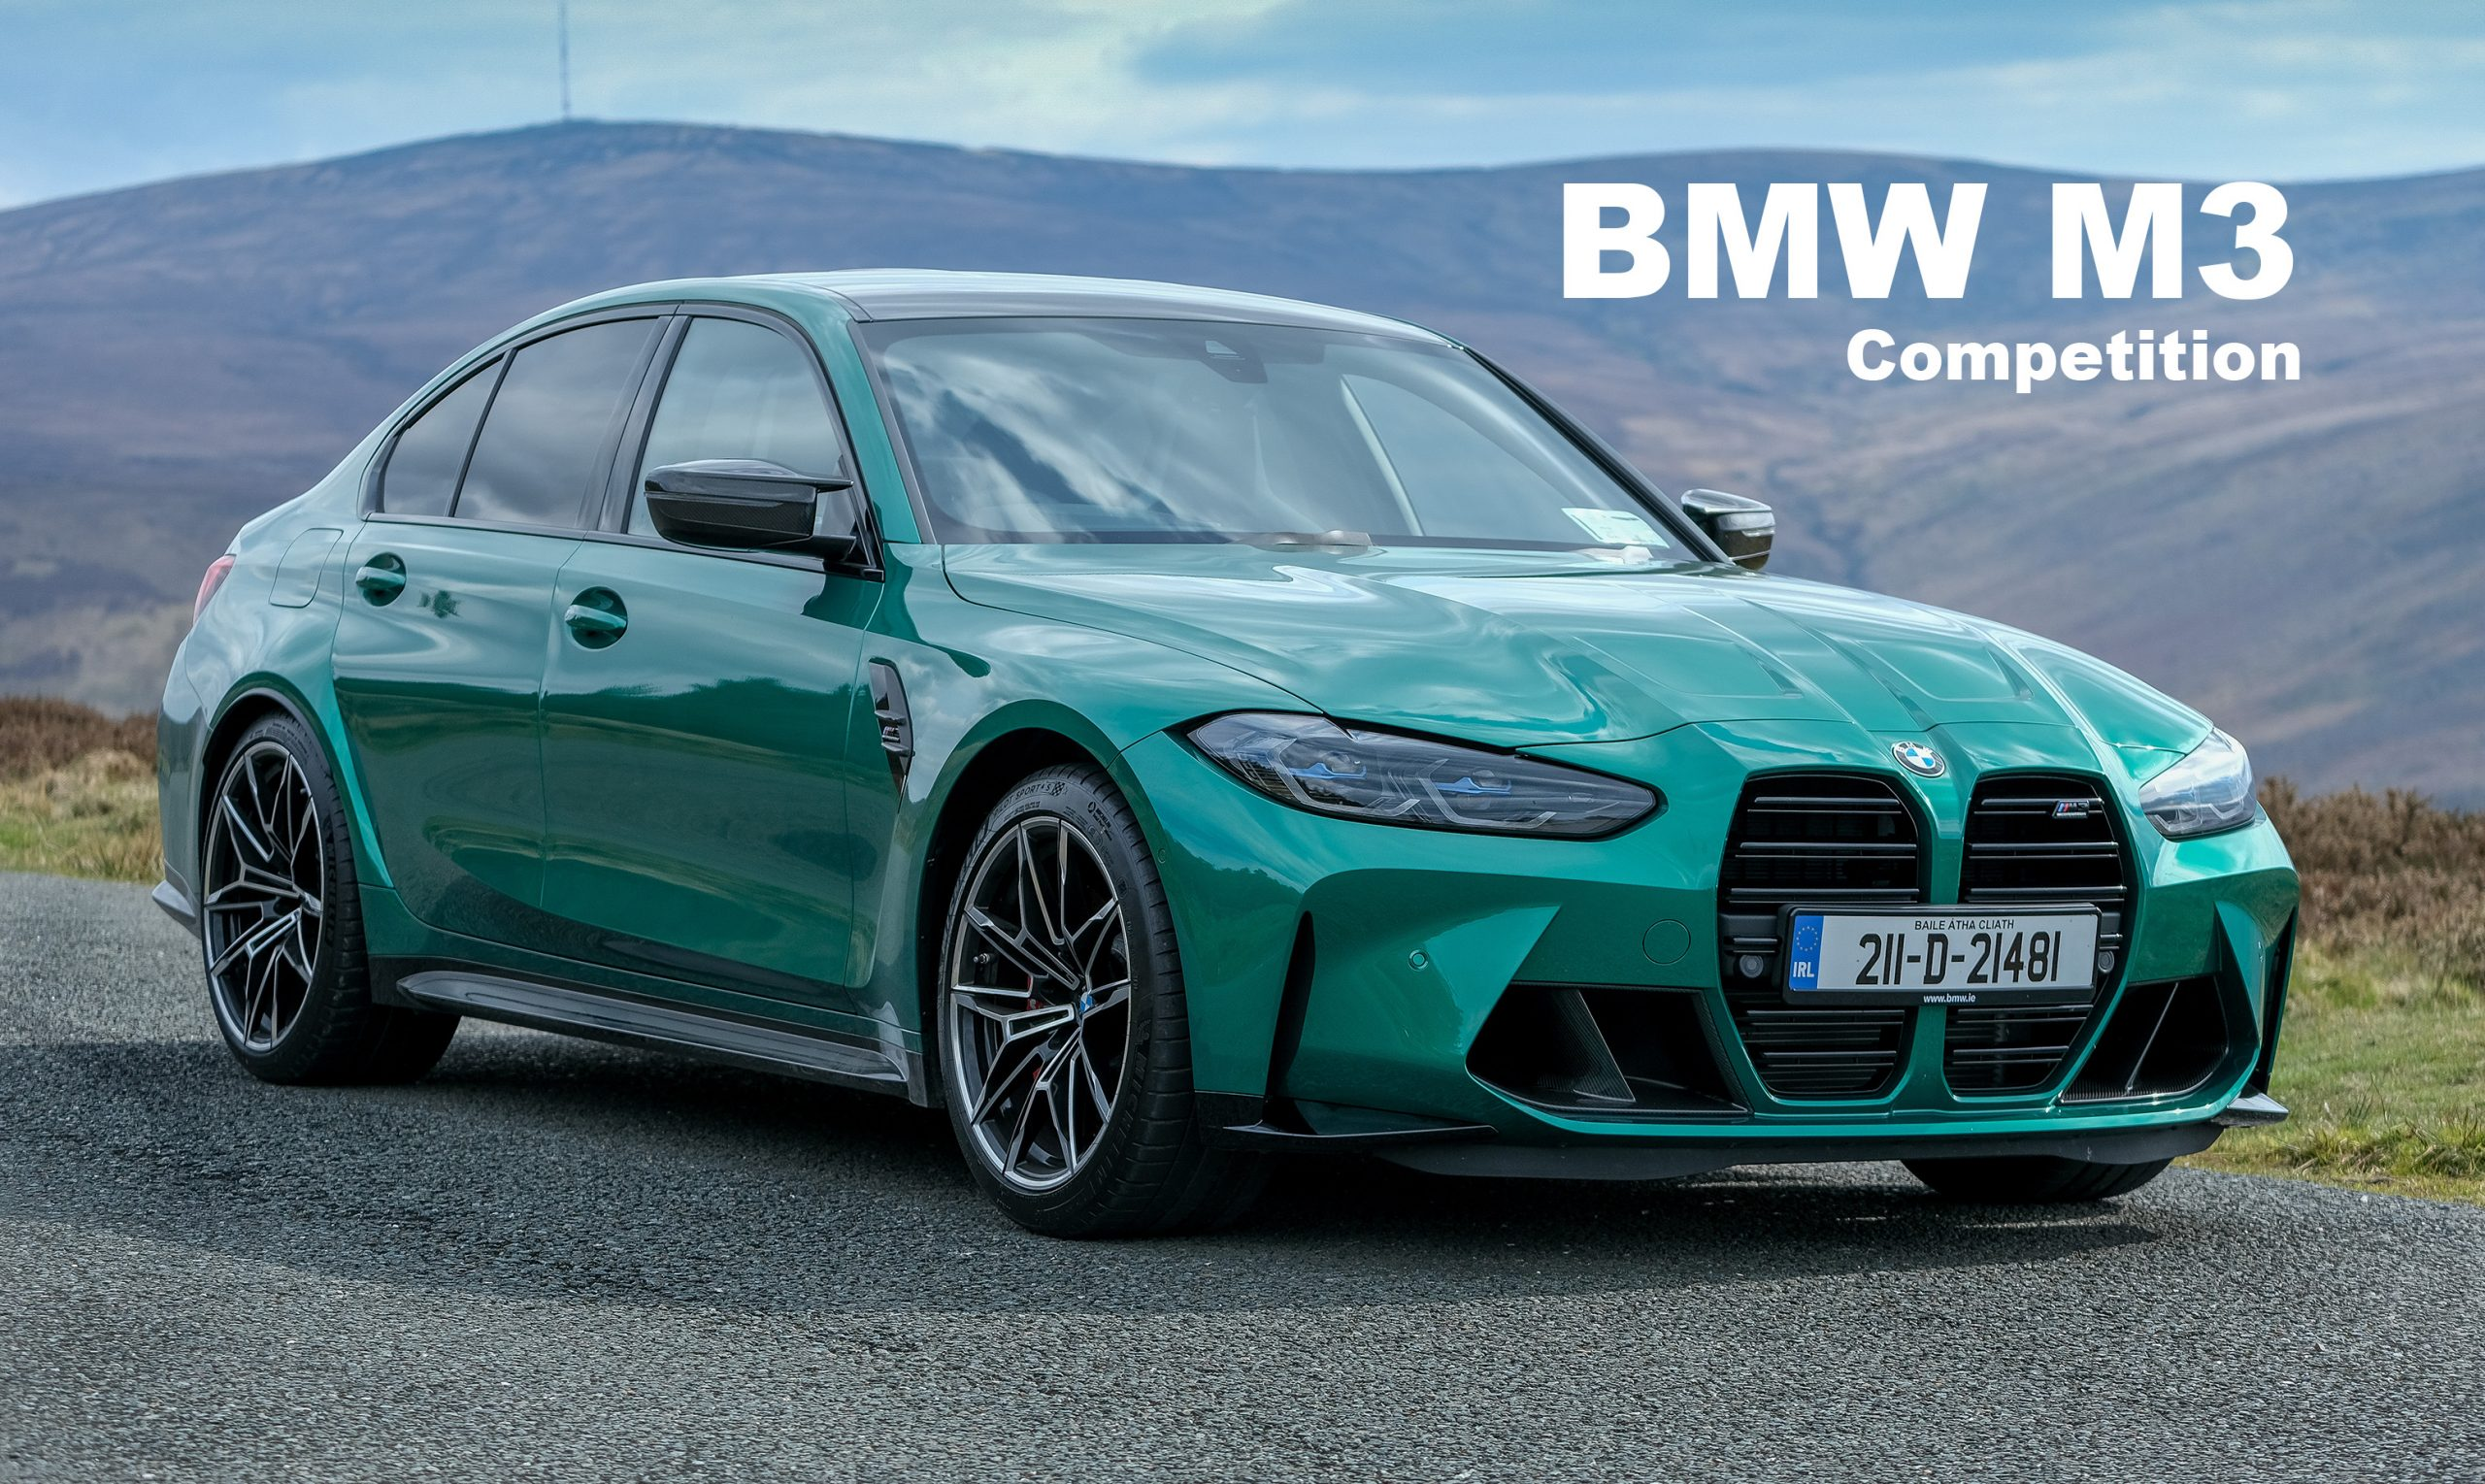 Carzone BMW M3